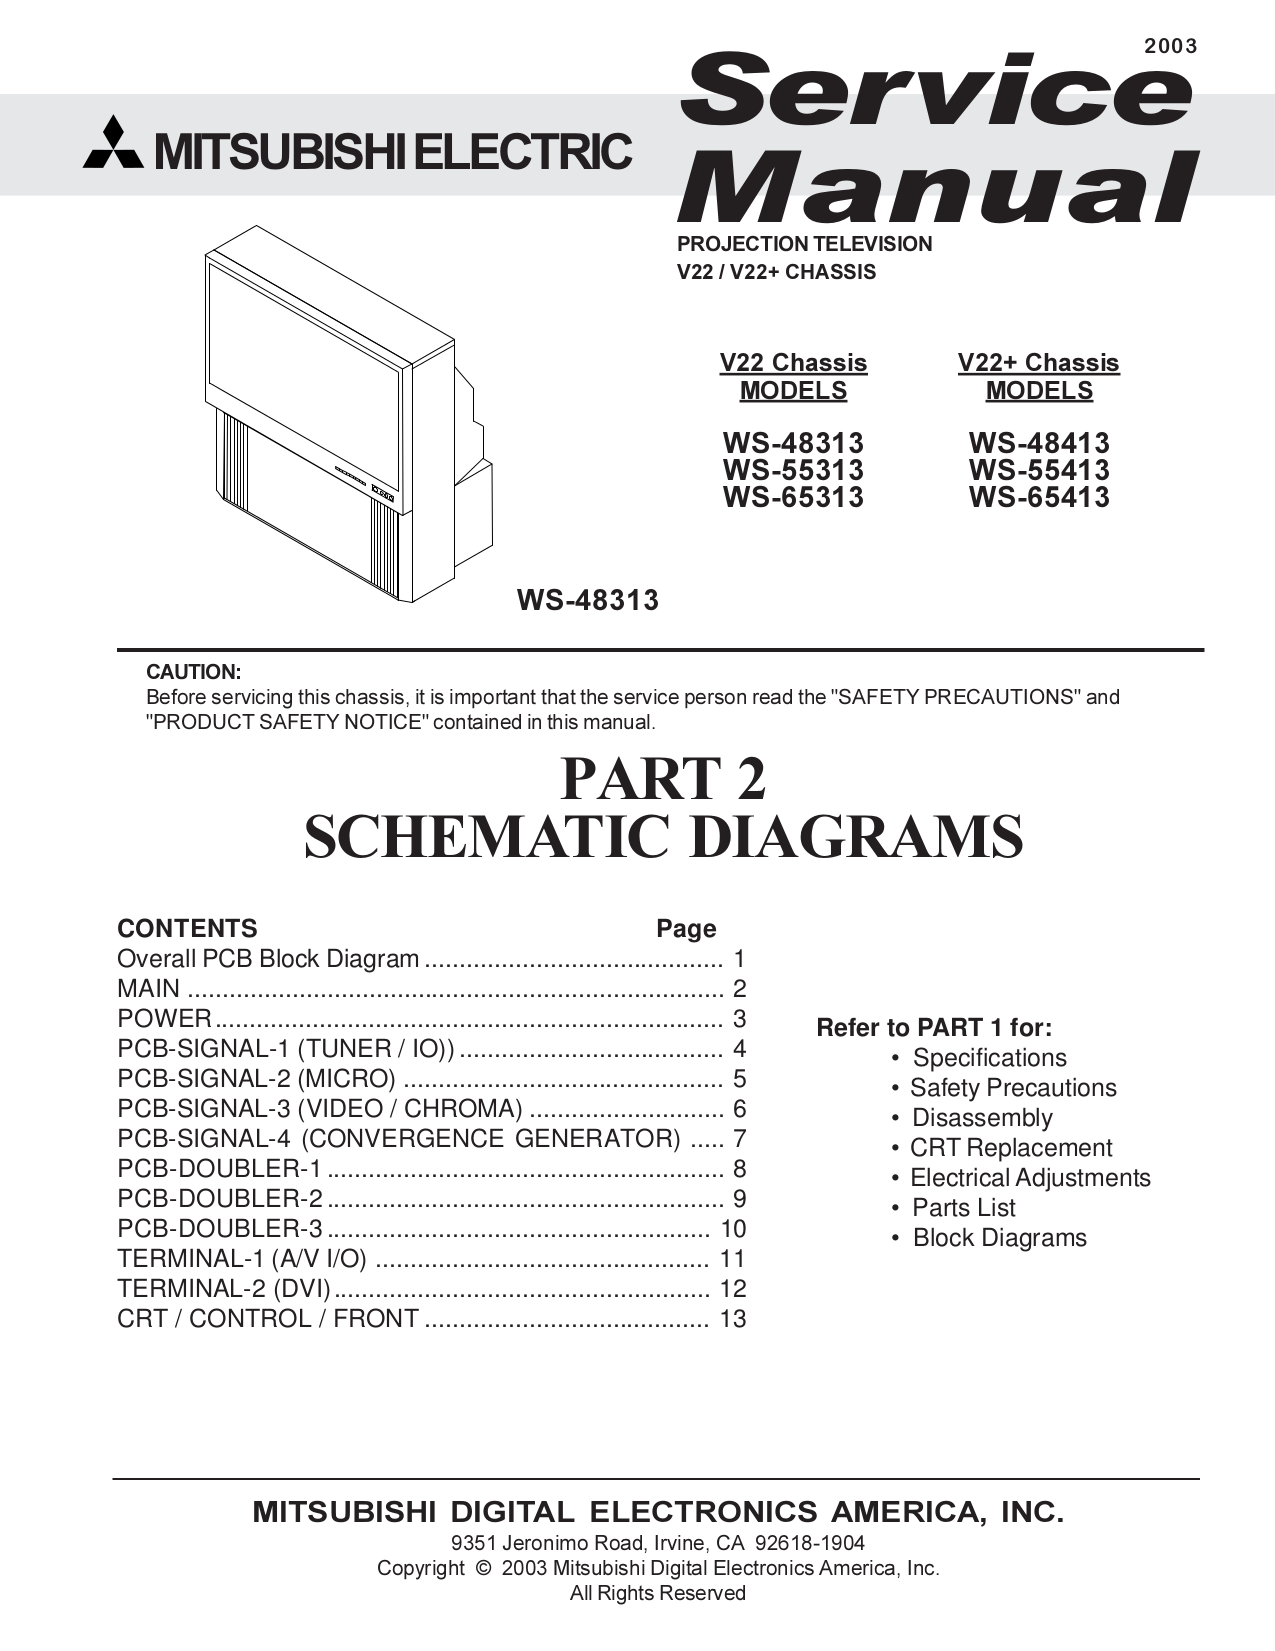 Schematic Diagram Mitsubishi Tv Trusted Wiring Online Panasonic Diagrams Download Free Pdf For Ws 48413 Manual